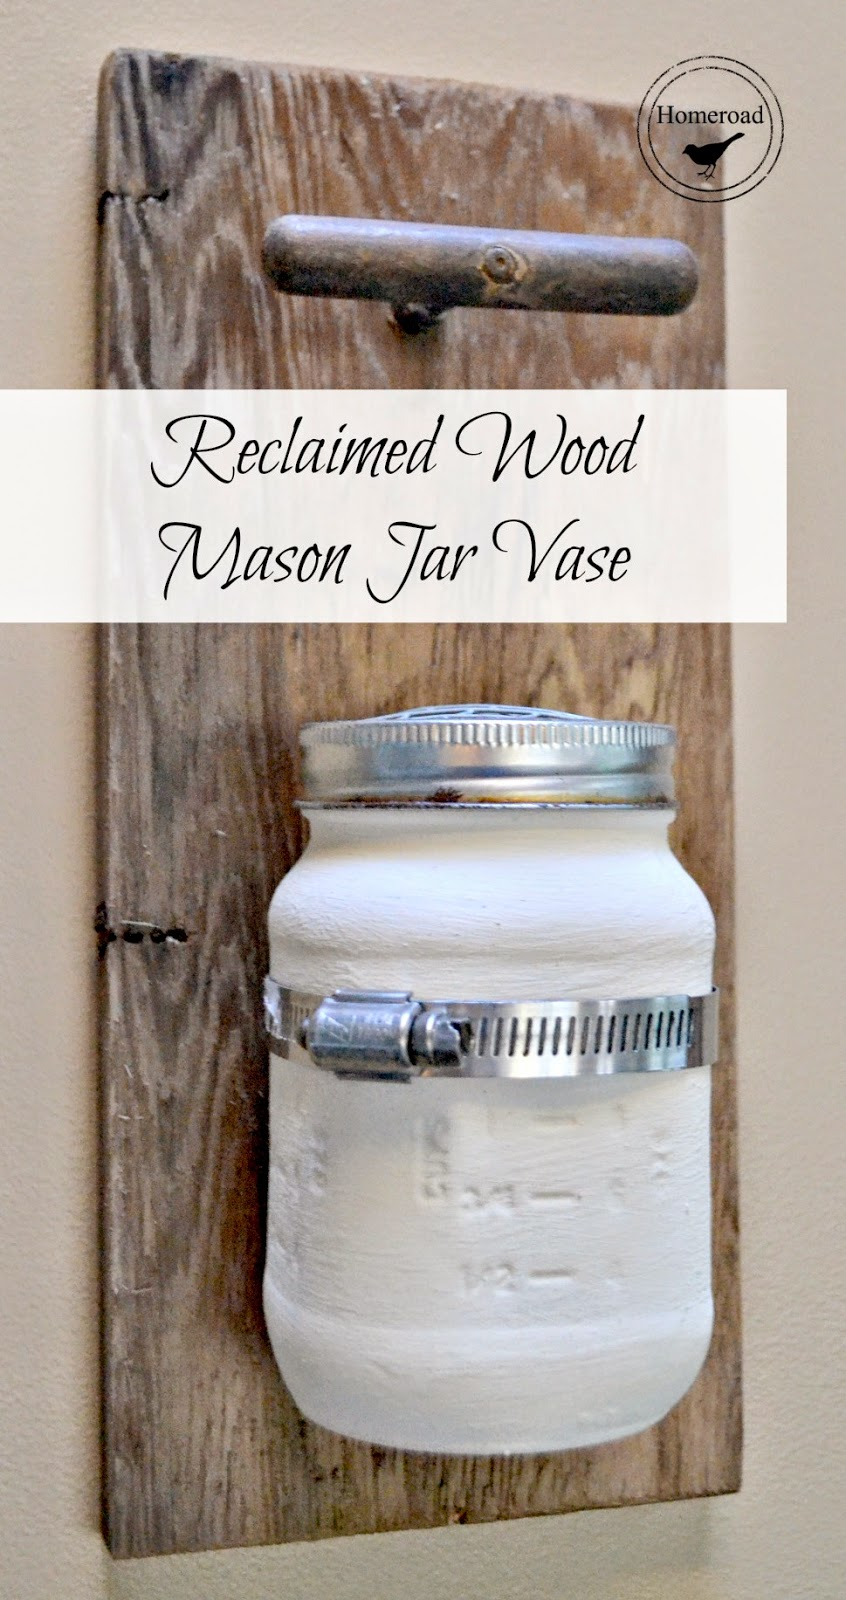 reclaimed wood painted mason jar vase www.homeroad.net